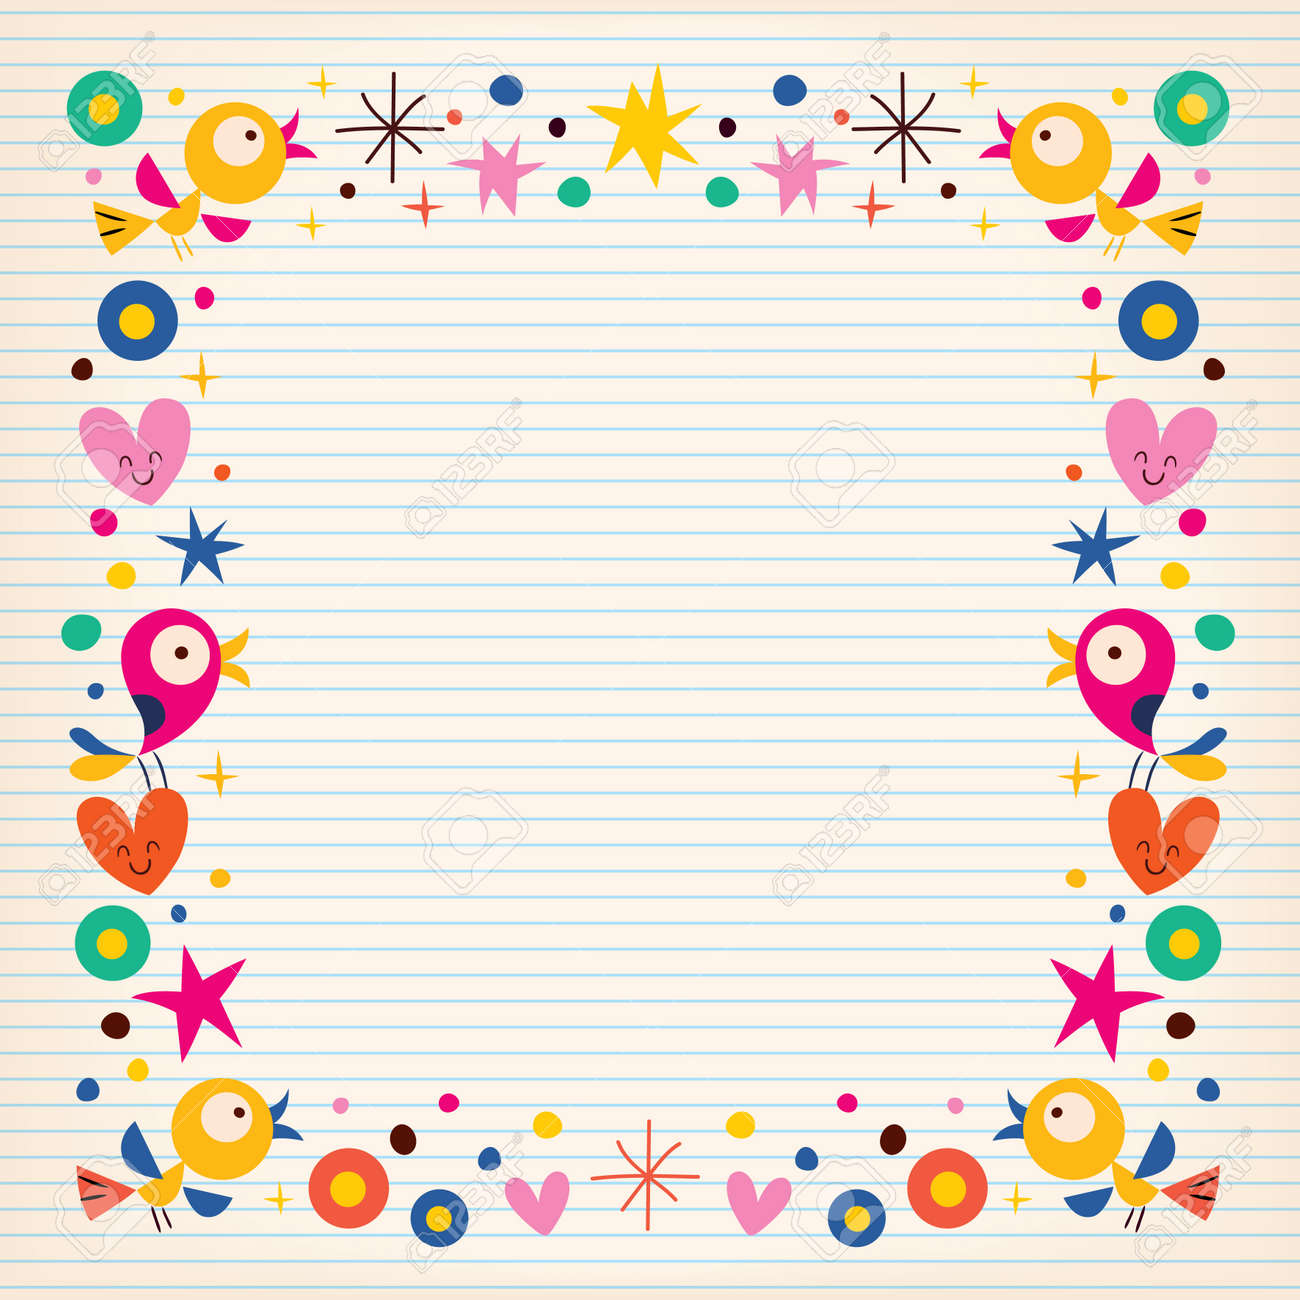 birds hearts happy border on lined paper background royalty free